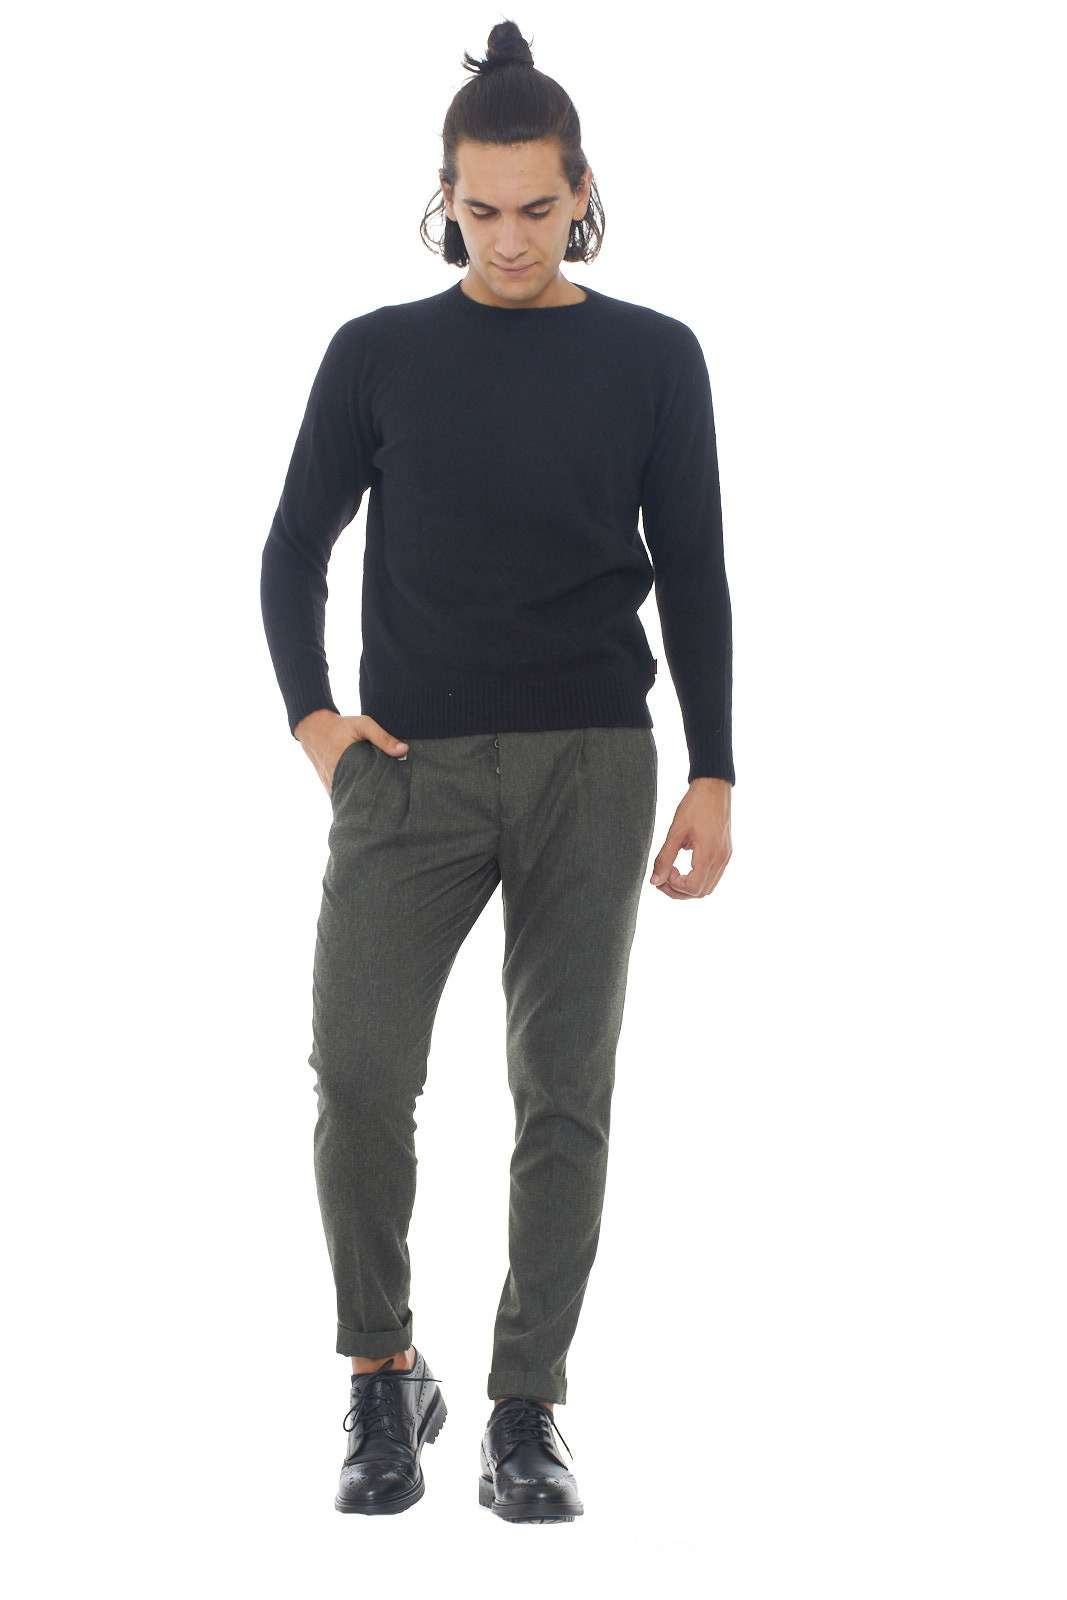 https://www.parmax.com/media/catalog/product/a/i/AI-outlet_parmax-maglia-uomo-Woolrich-WWMAG1811-D.jpg